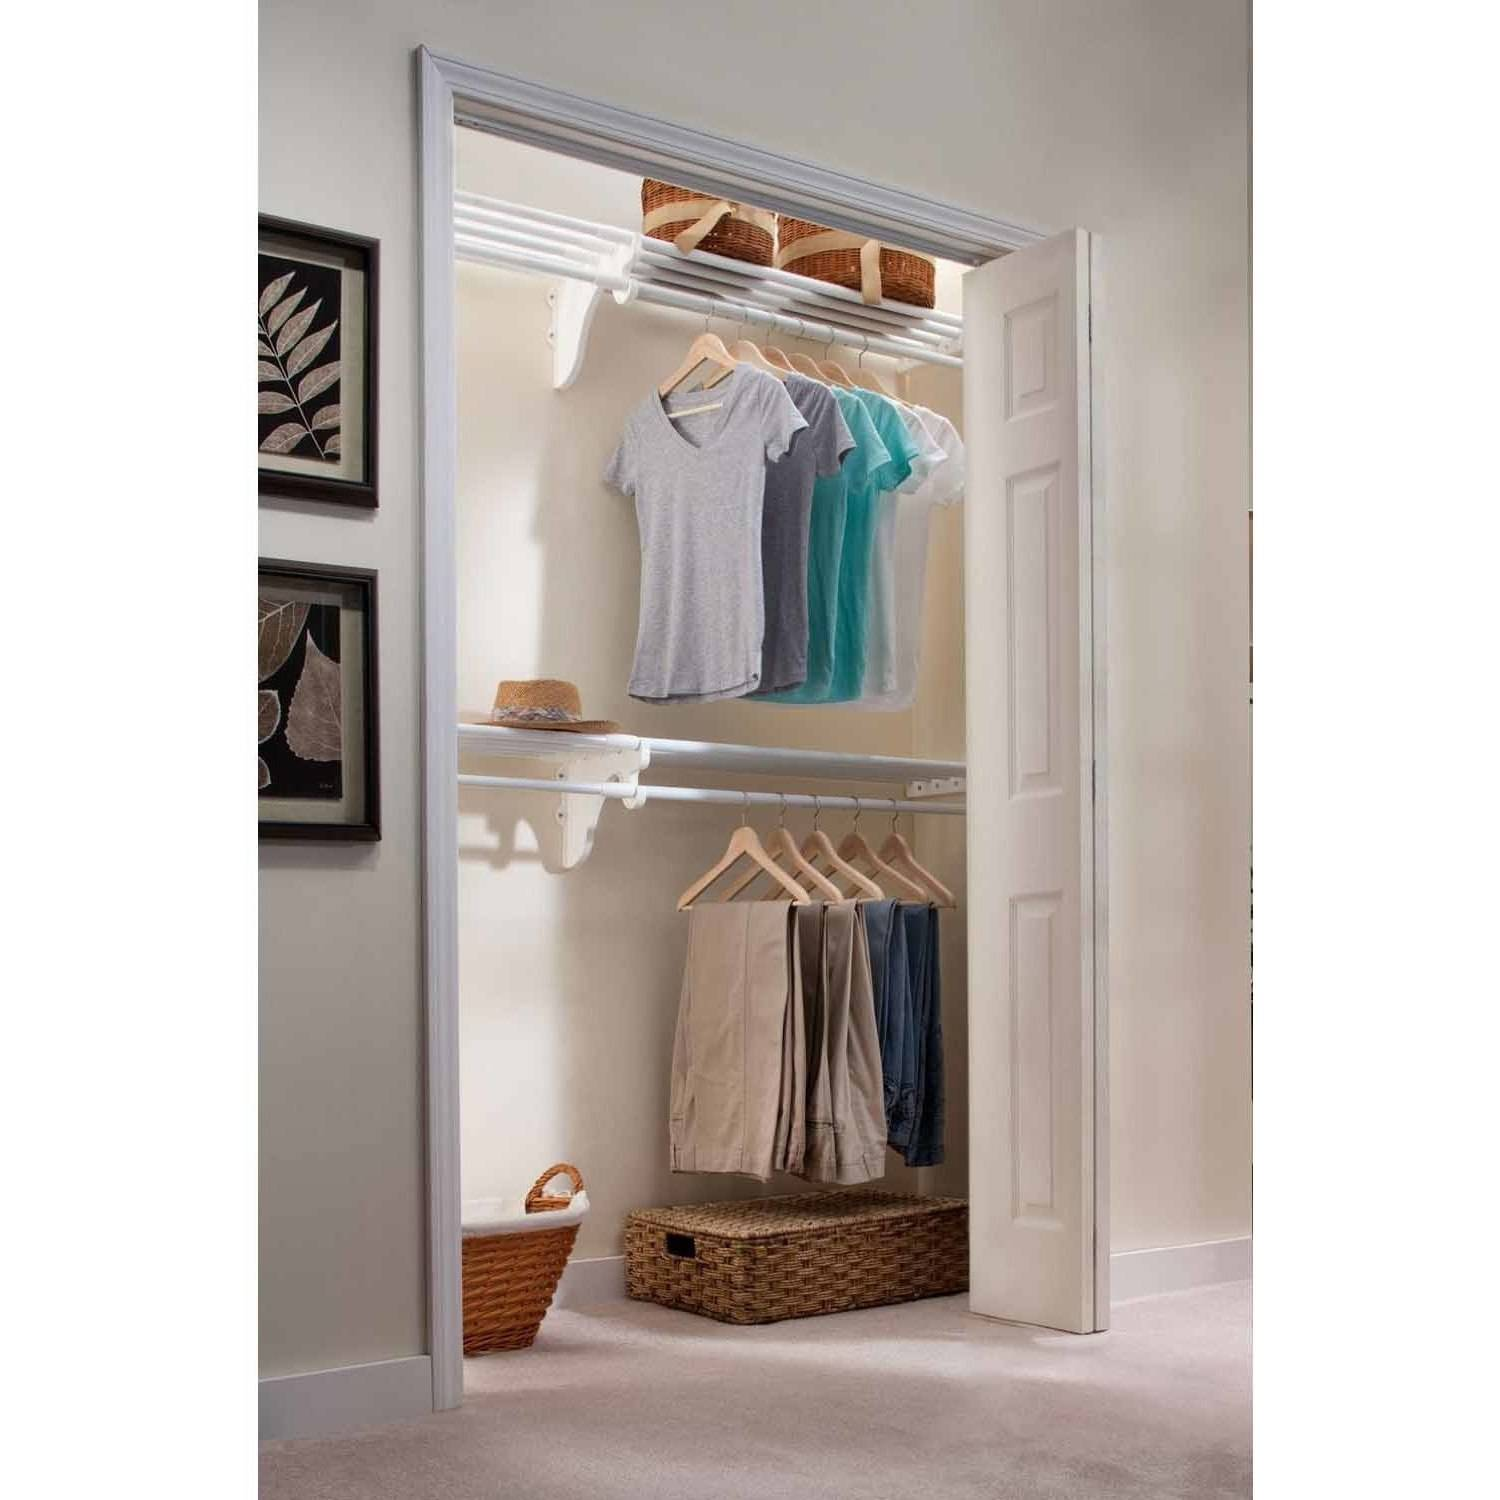 EZ Shelf 12' Closet Organizer Kit, Up to 12.2' of Hanging and Shelf Space, White